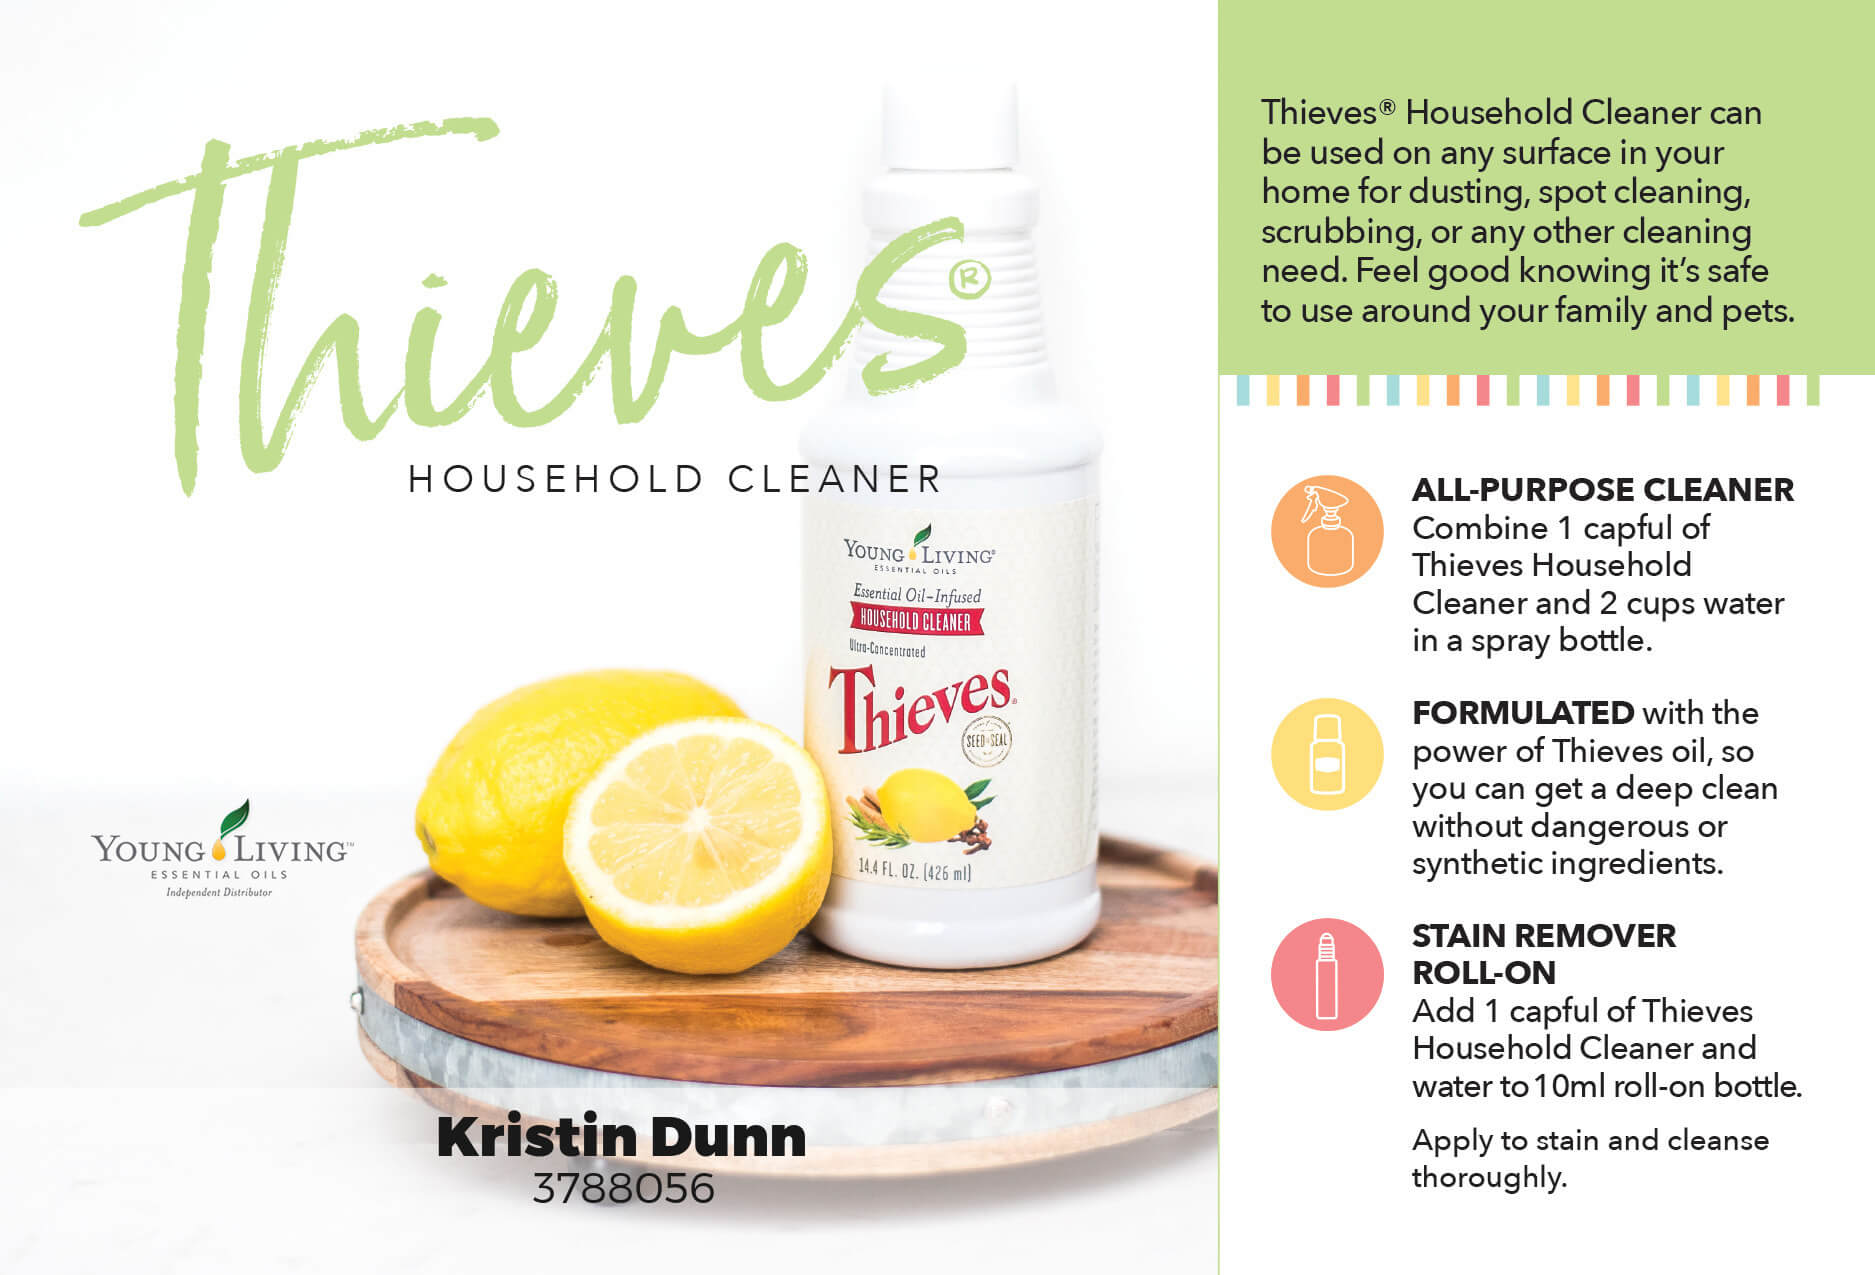 Uses for Young Living's Thieves Household Cleaner